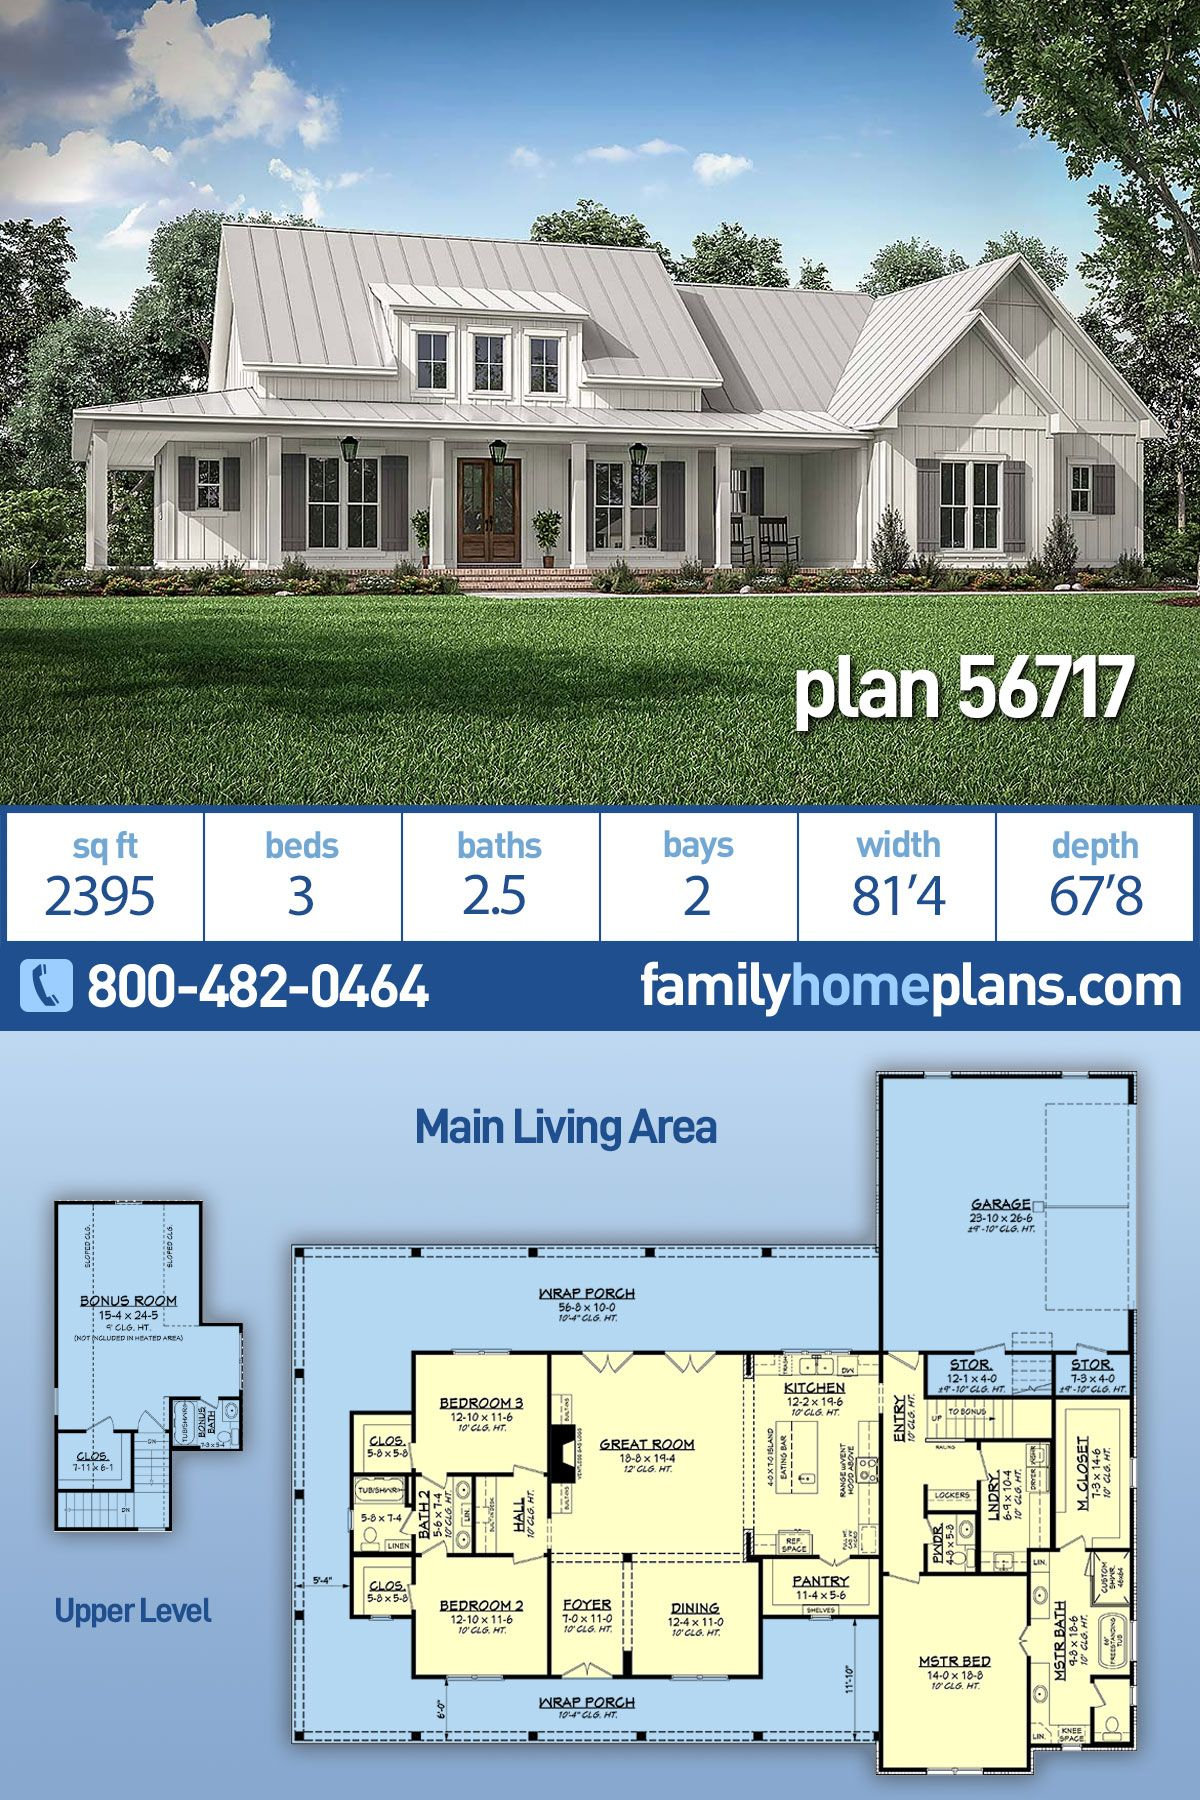 Farmhouse Style House Plan 56717 With 3 Bed 3 Bath 2 Car Garage In 2020 Farmhouse Style House Modern Farmhouse Plans House Plans Farmhouse